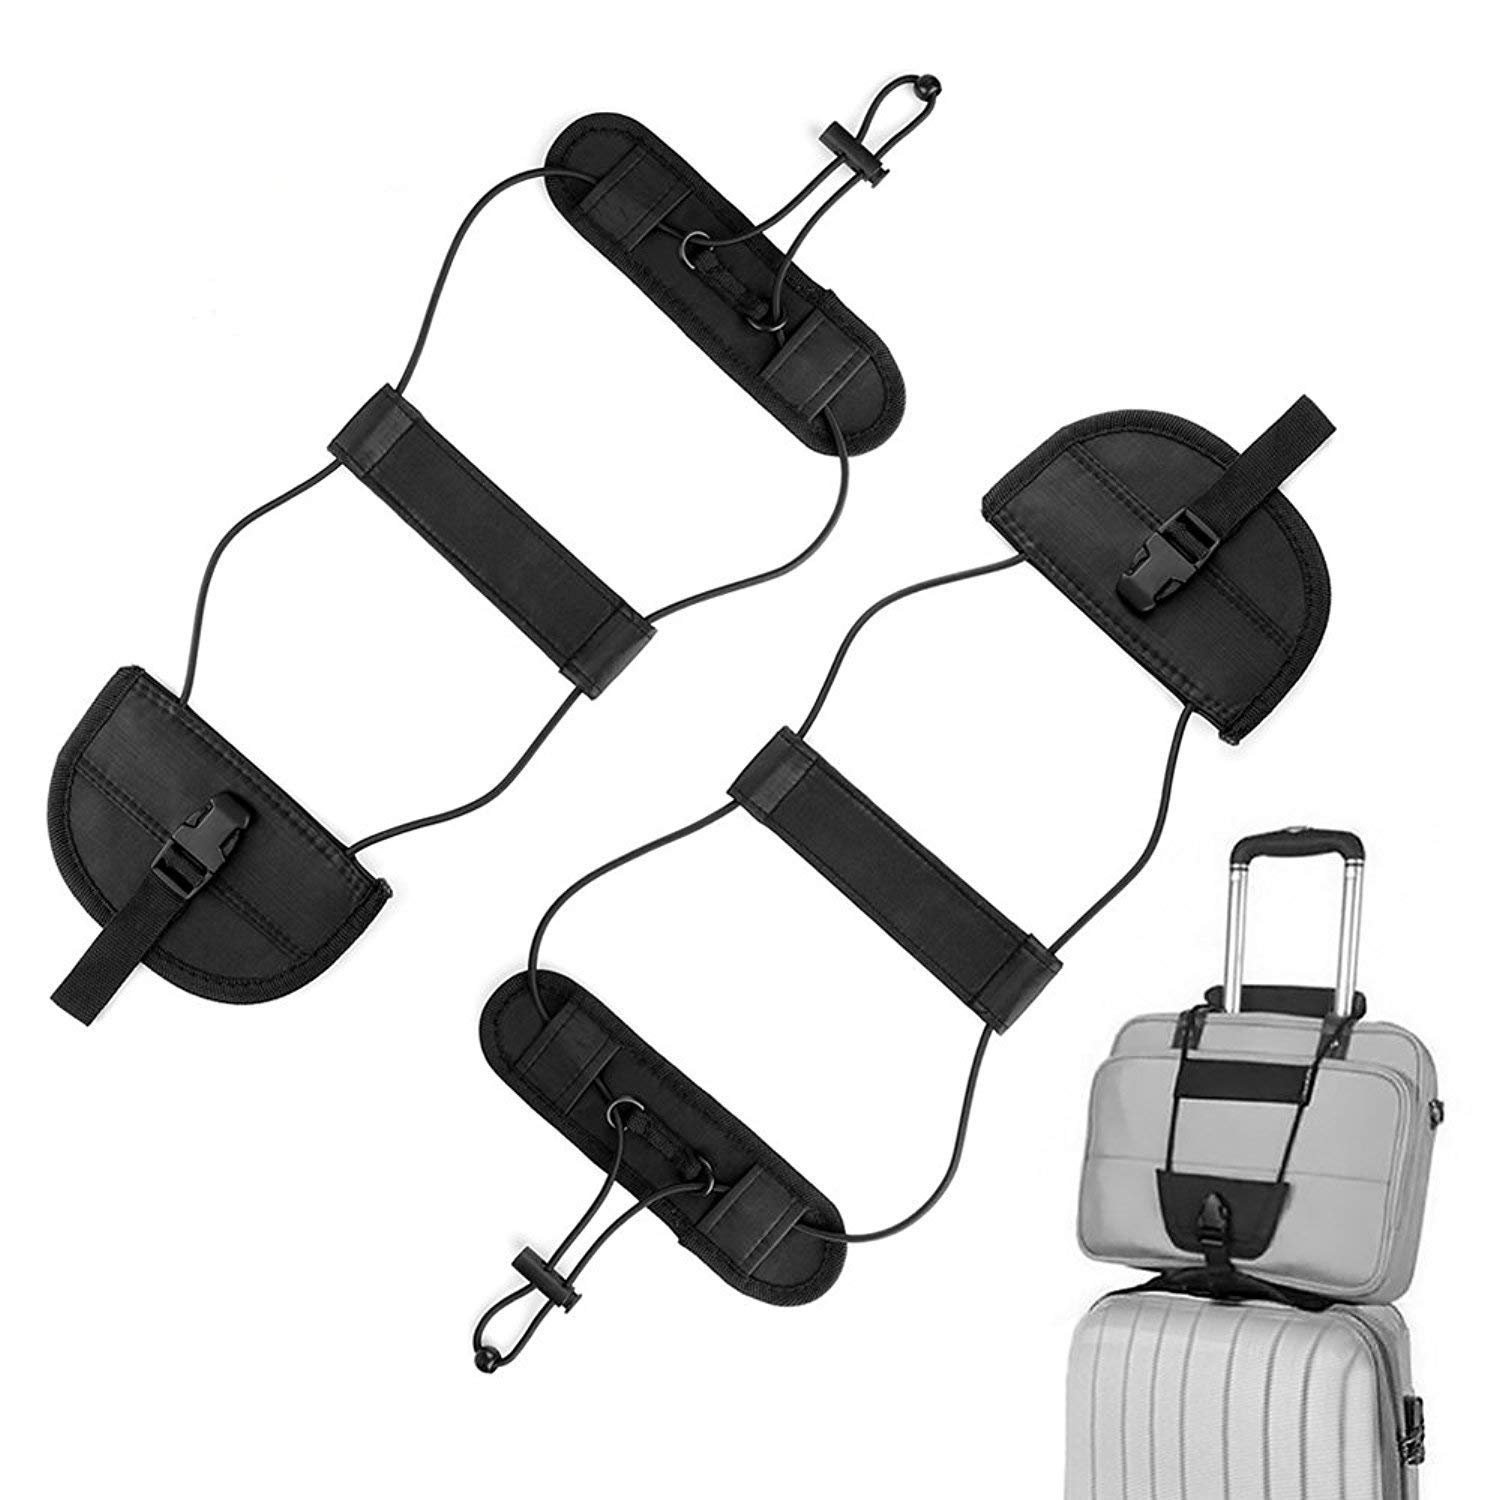 Binew Bag Bungee, Luggage Straps Suitcase Adjustable Belt - Lightweight and Durable Travel Bag Accessories